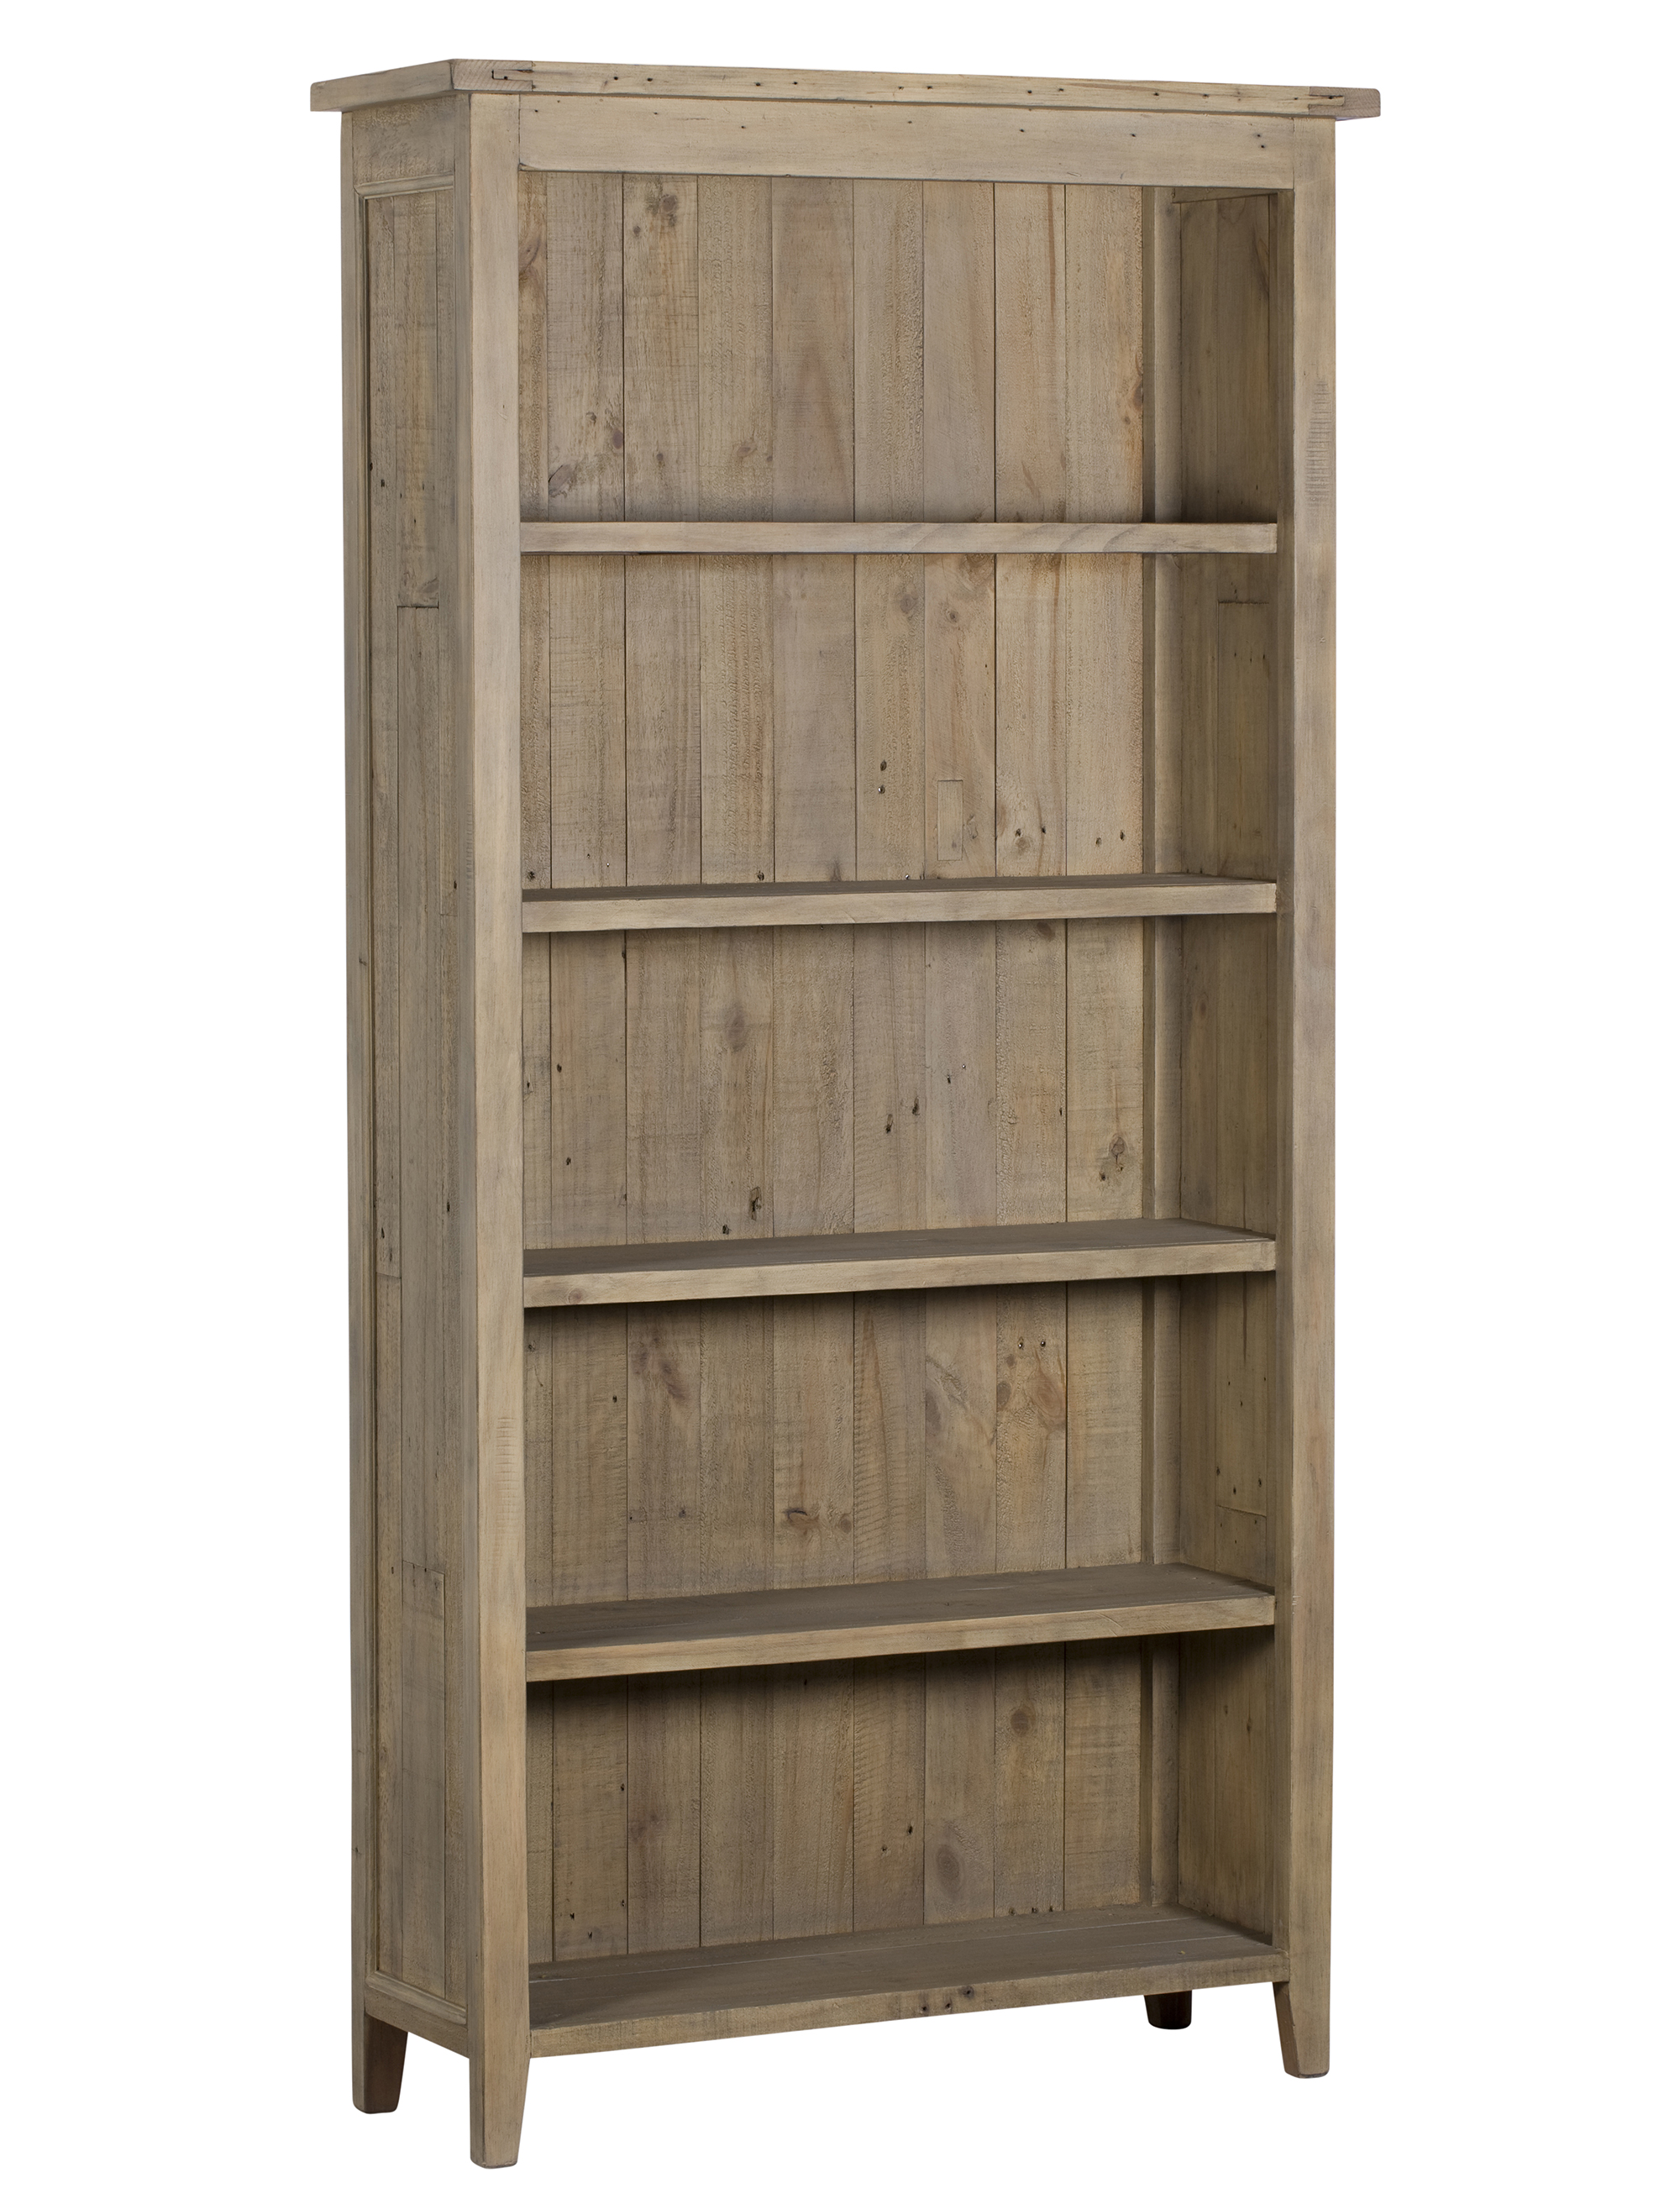 Verona Tall Bookcase VT12 1